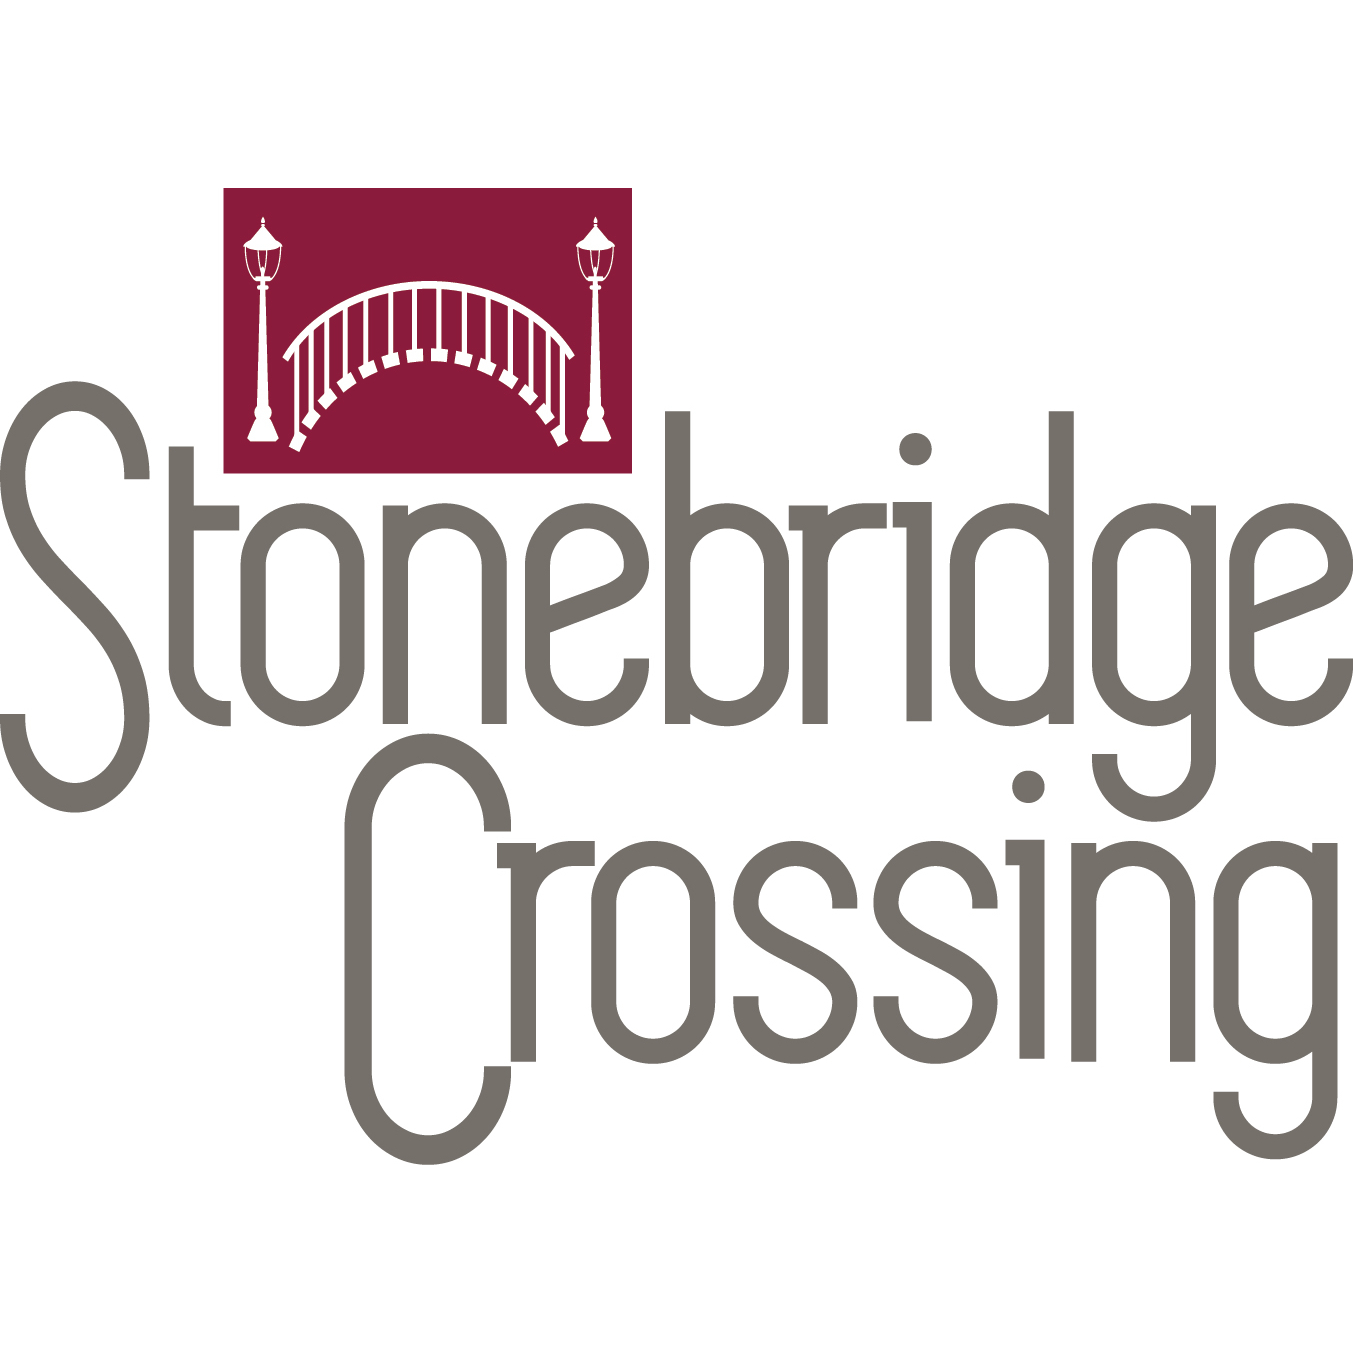 Stonebridge Crossing image 3